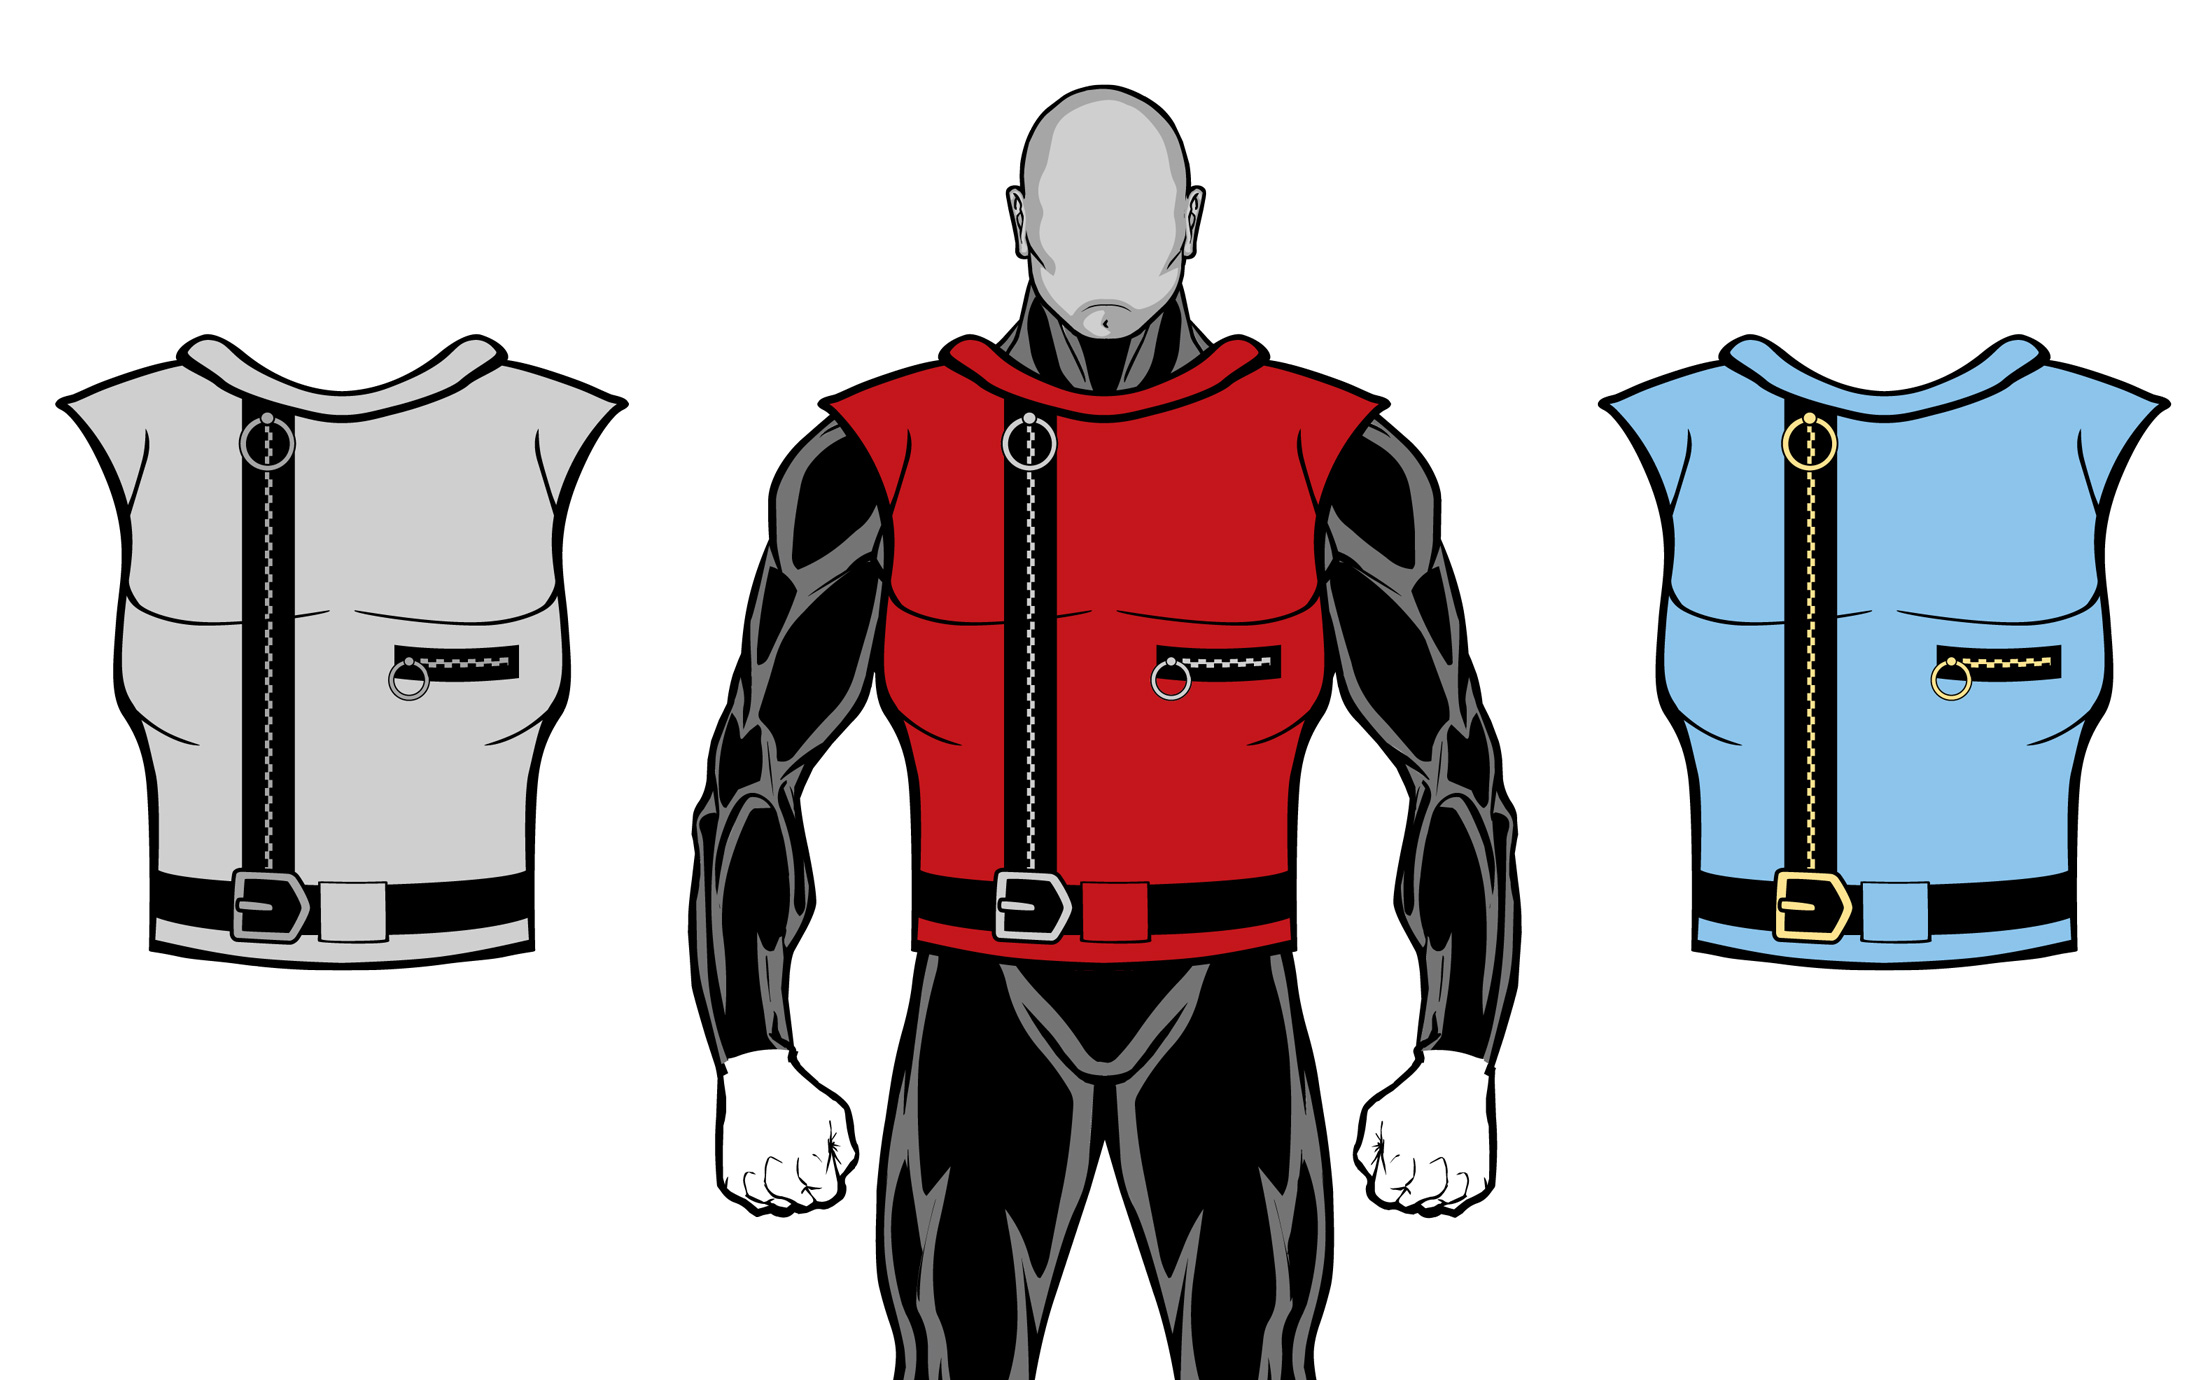 Tunic_Scifi_MALE_SHOW-1.jpg